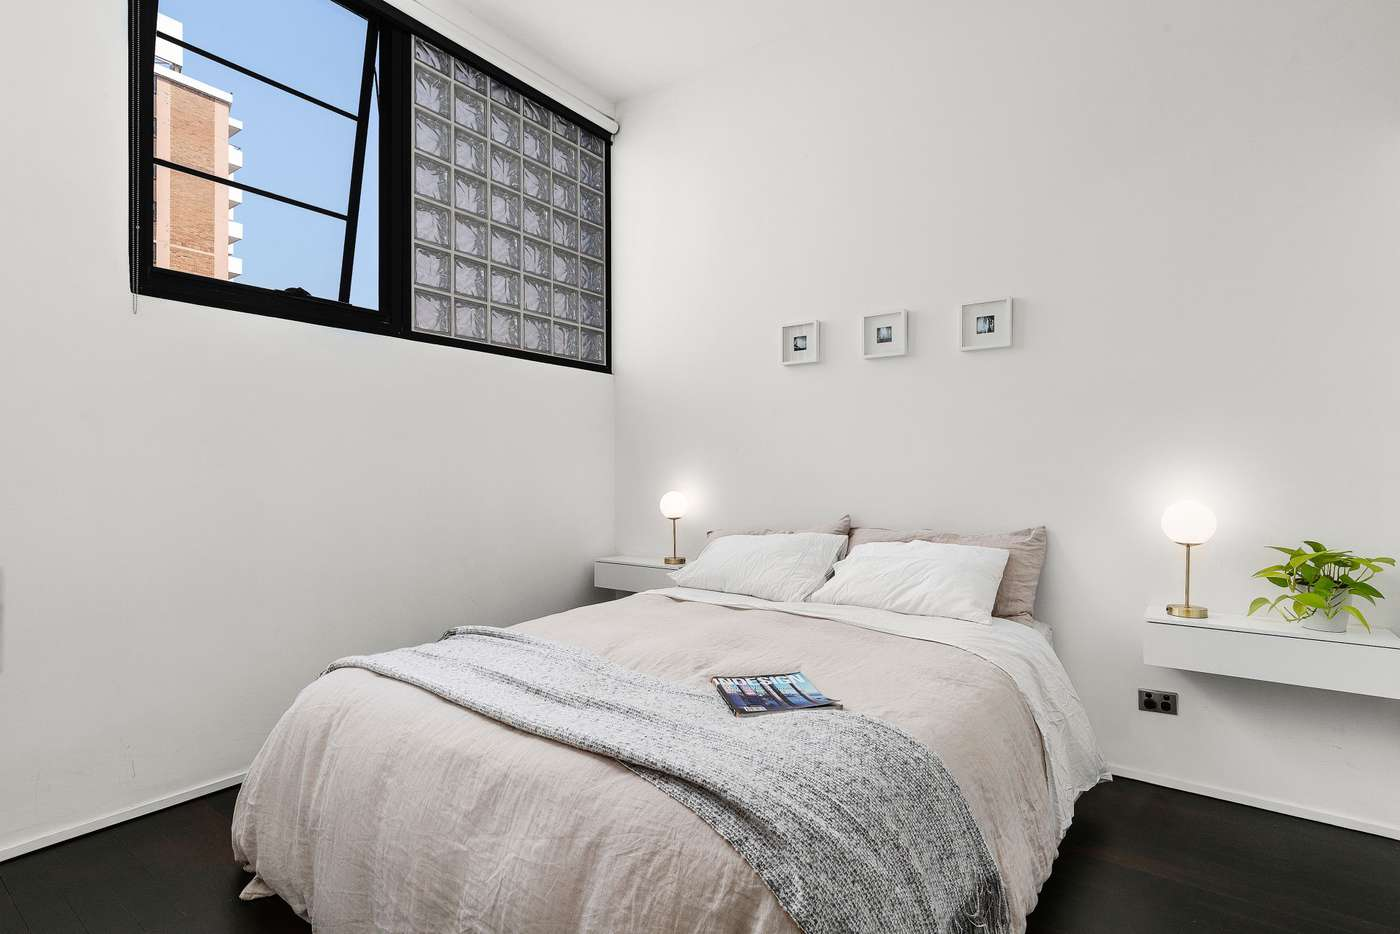 Fifth view of Homely apartment listing, 29/277 Crown Street, Surry Hills NSW 2010